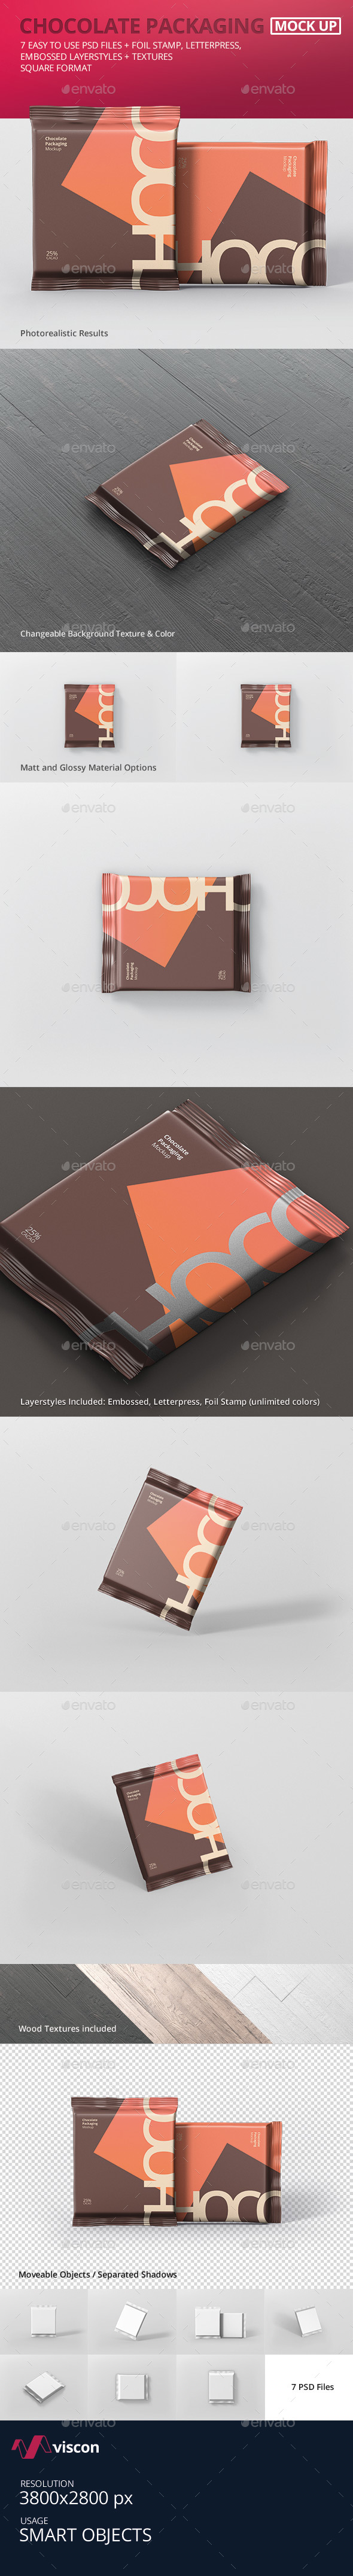 GraphicRiver Foil Chocolate Packaging Mockup Square Size 21180593